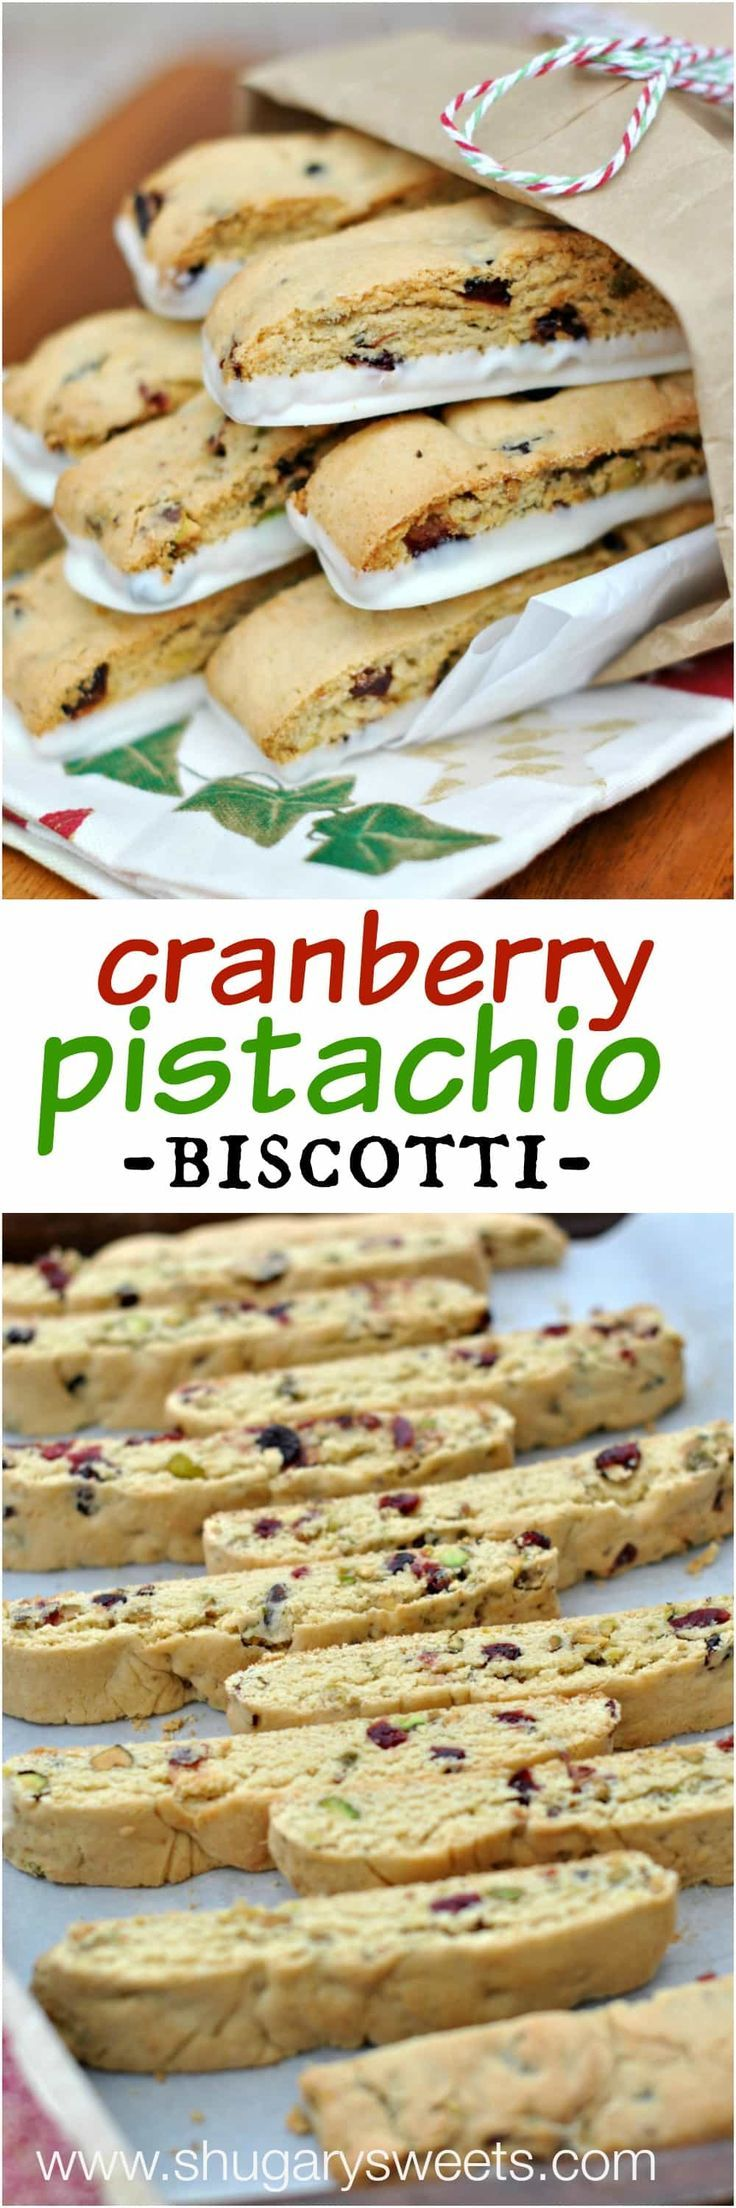 Crunchy Biscotti recipe made with Cranberry, Pistachio and White Chocolate. Keeping some biscotti on hand during the holiday season!